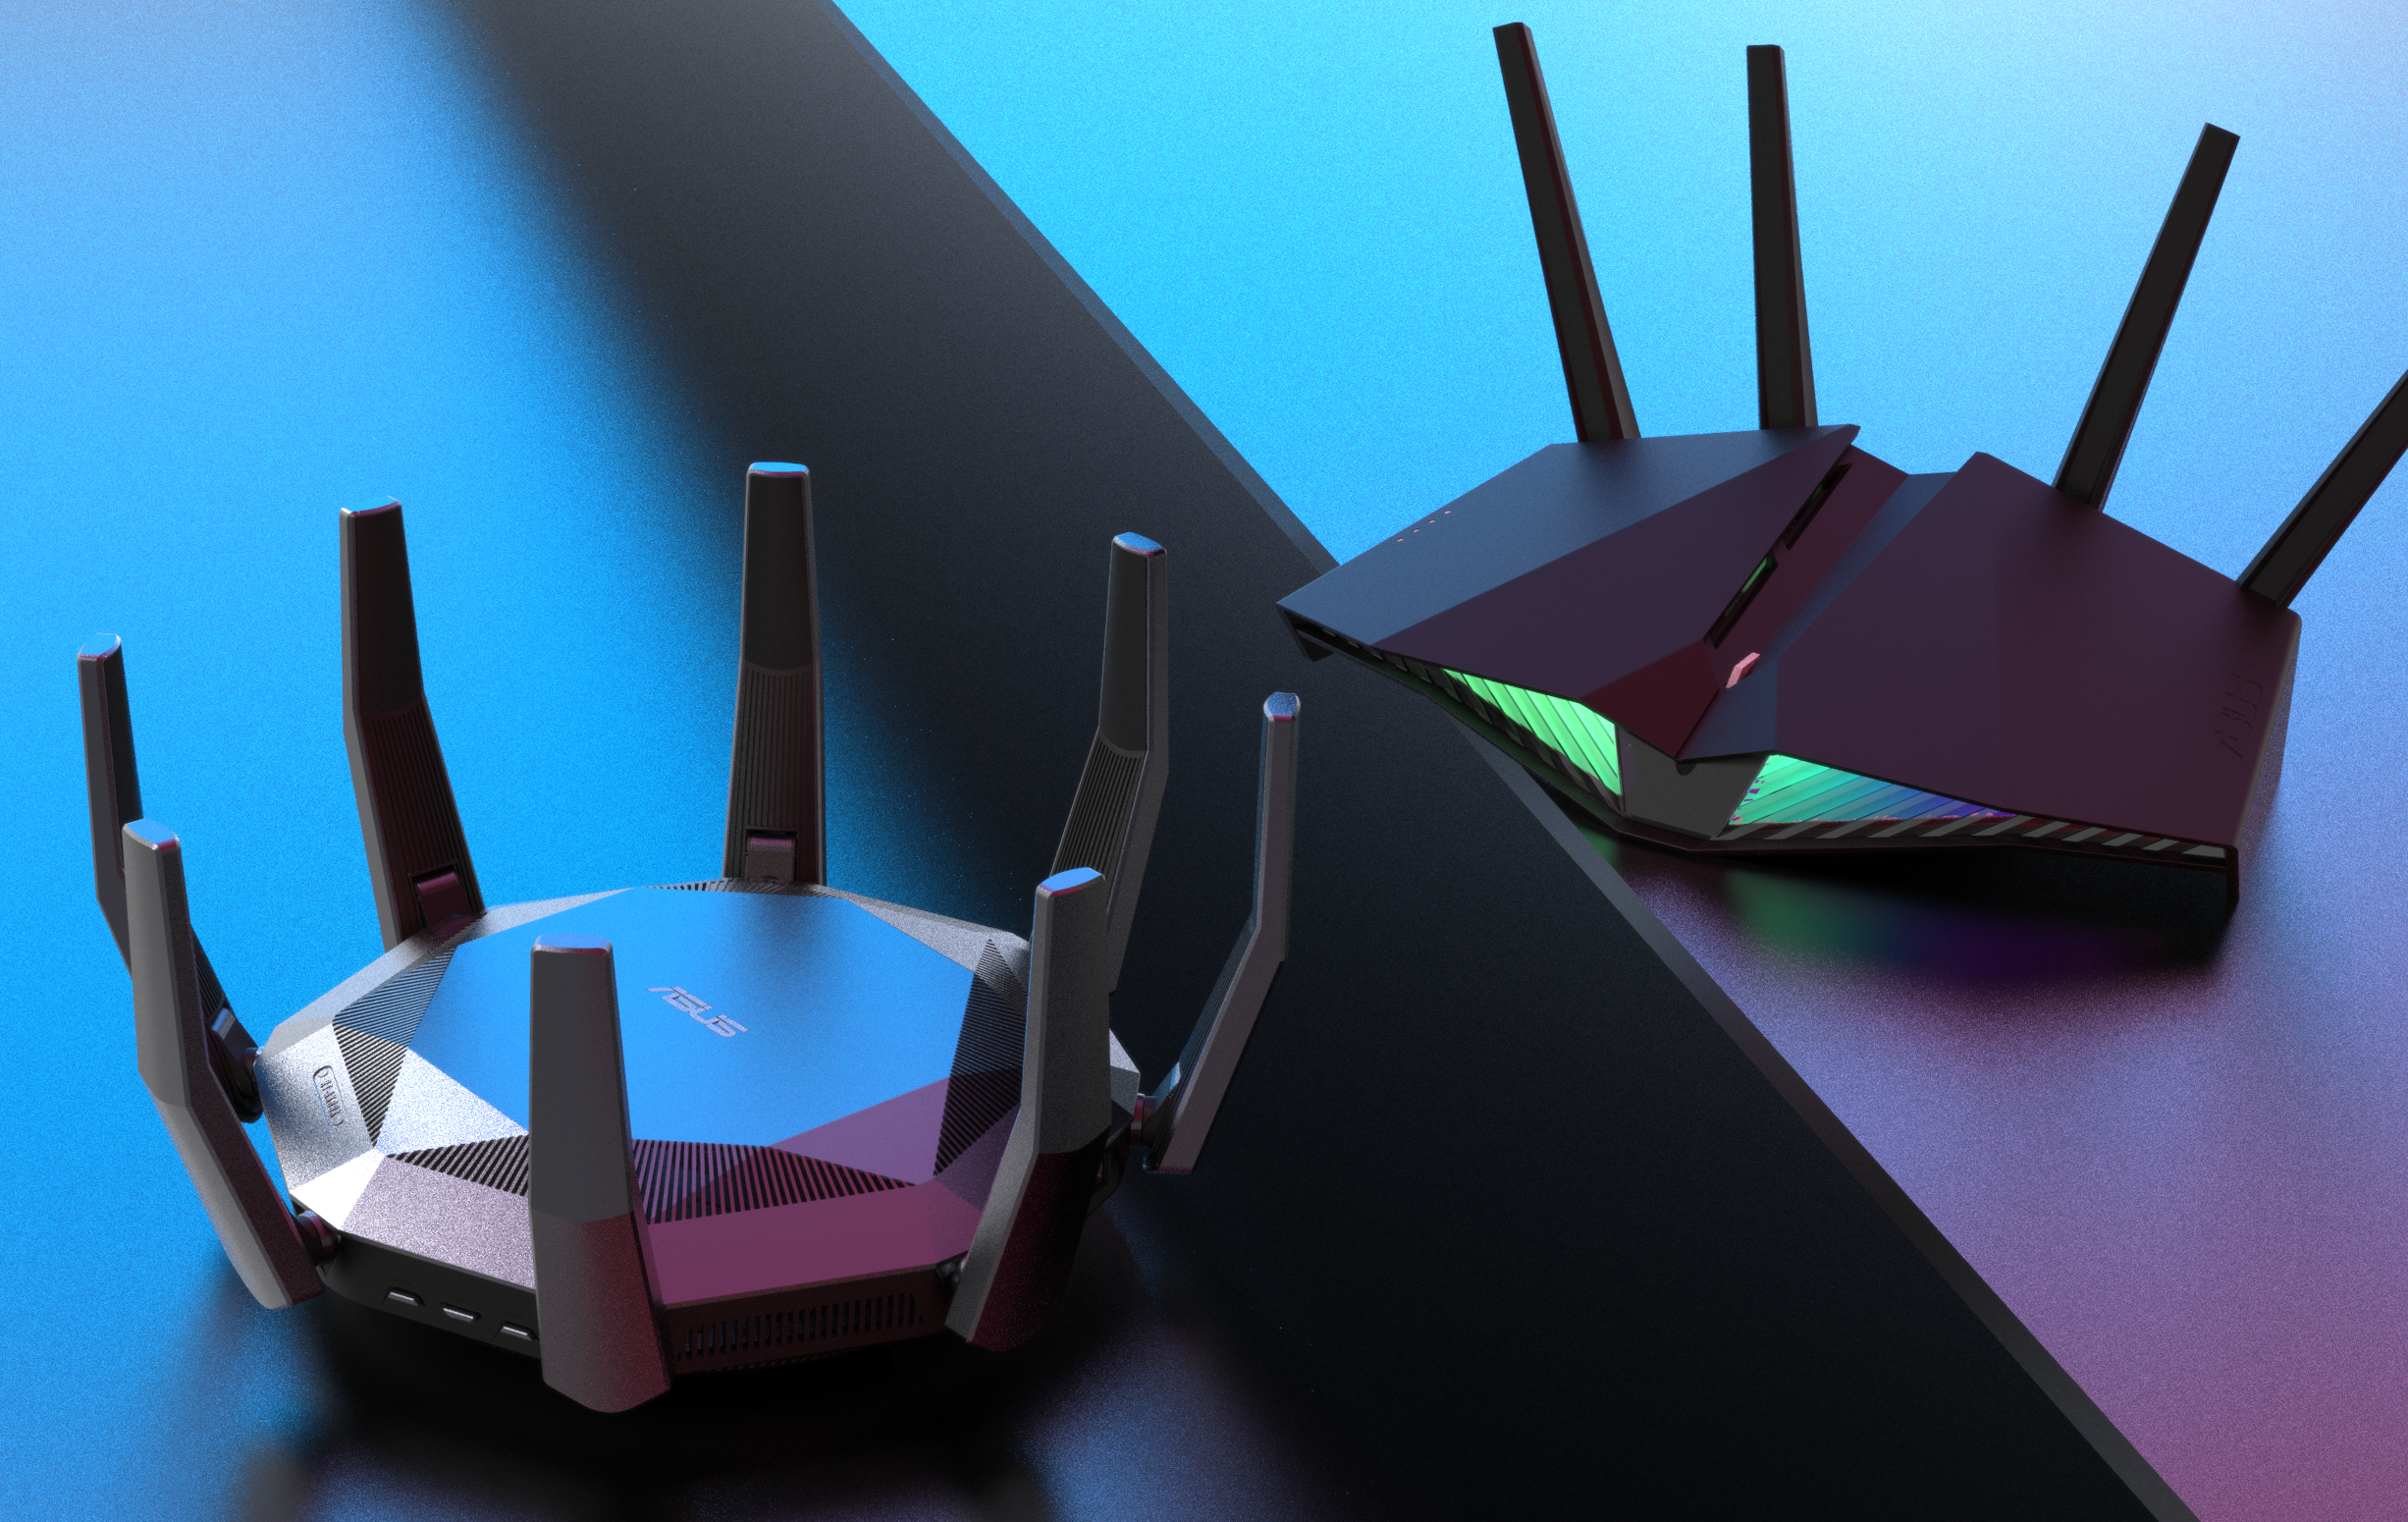 ASUS Router2